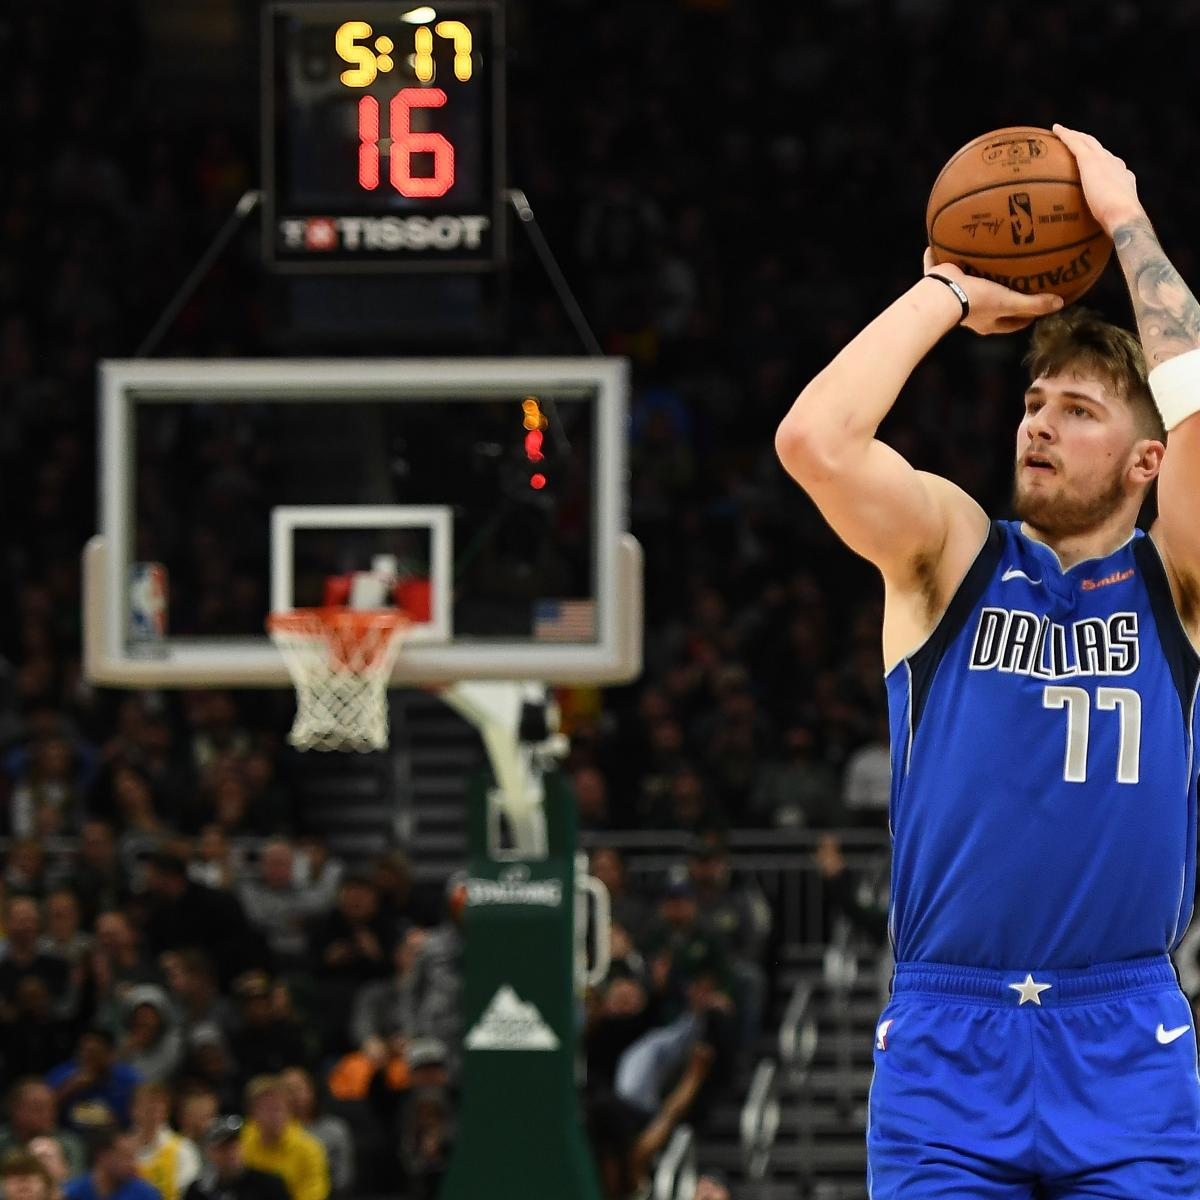 Report: Luka Doncic, De'Aaron Fox Commit To 2019 NBA All